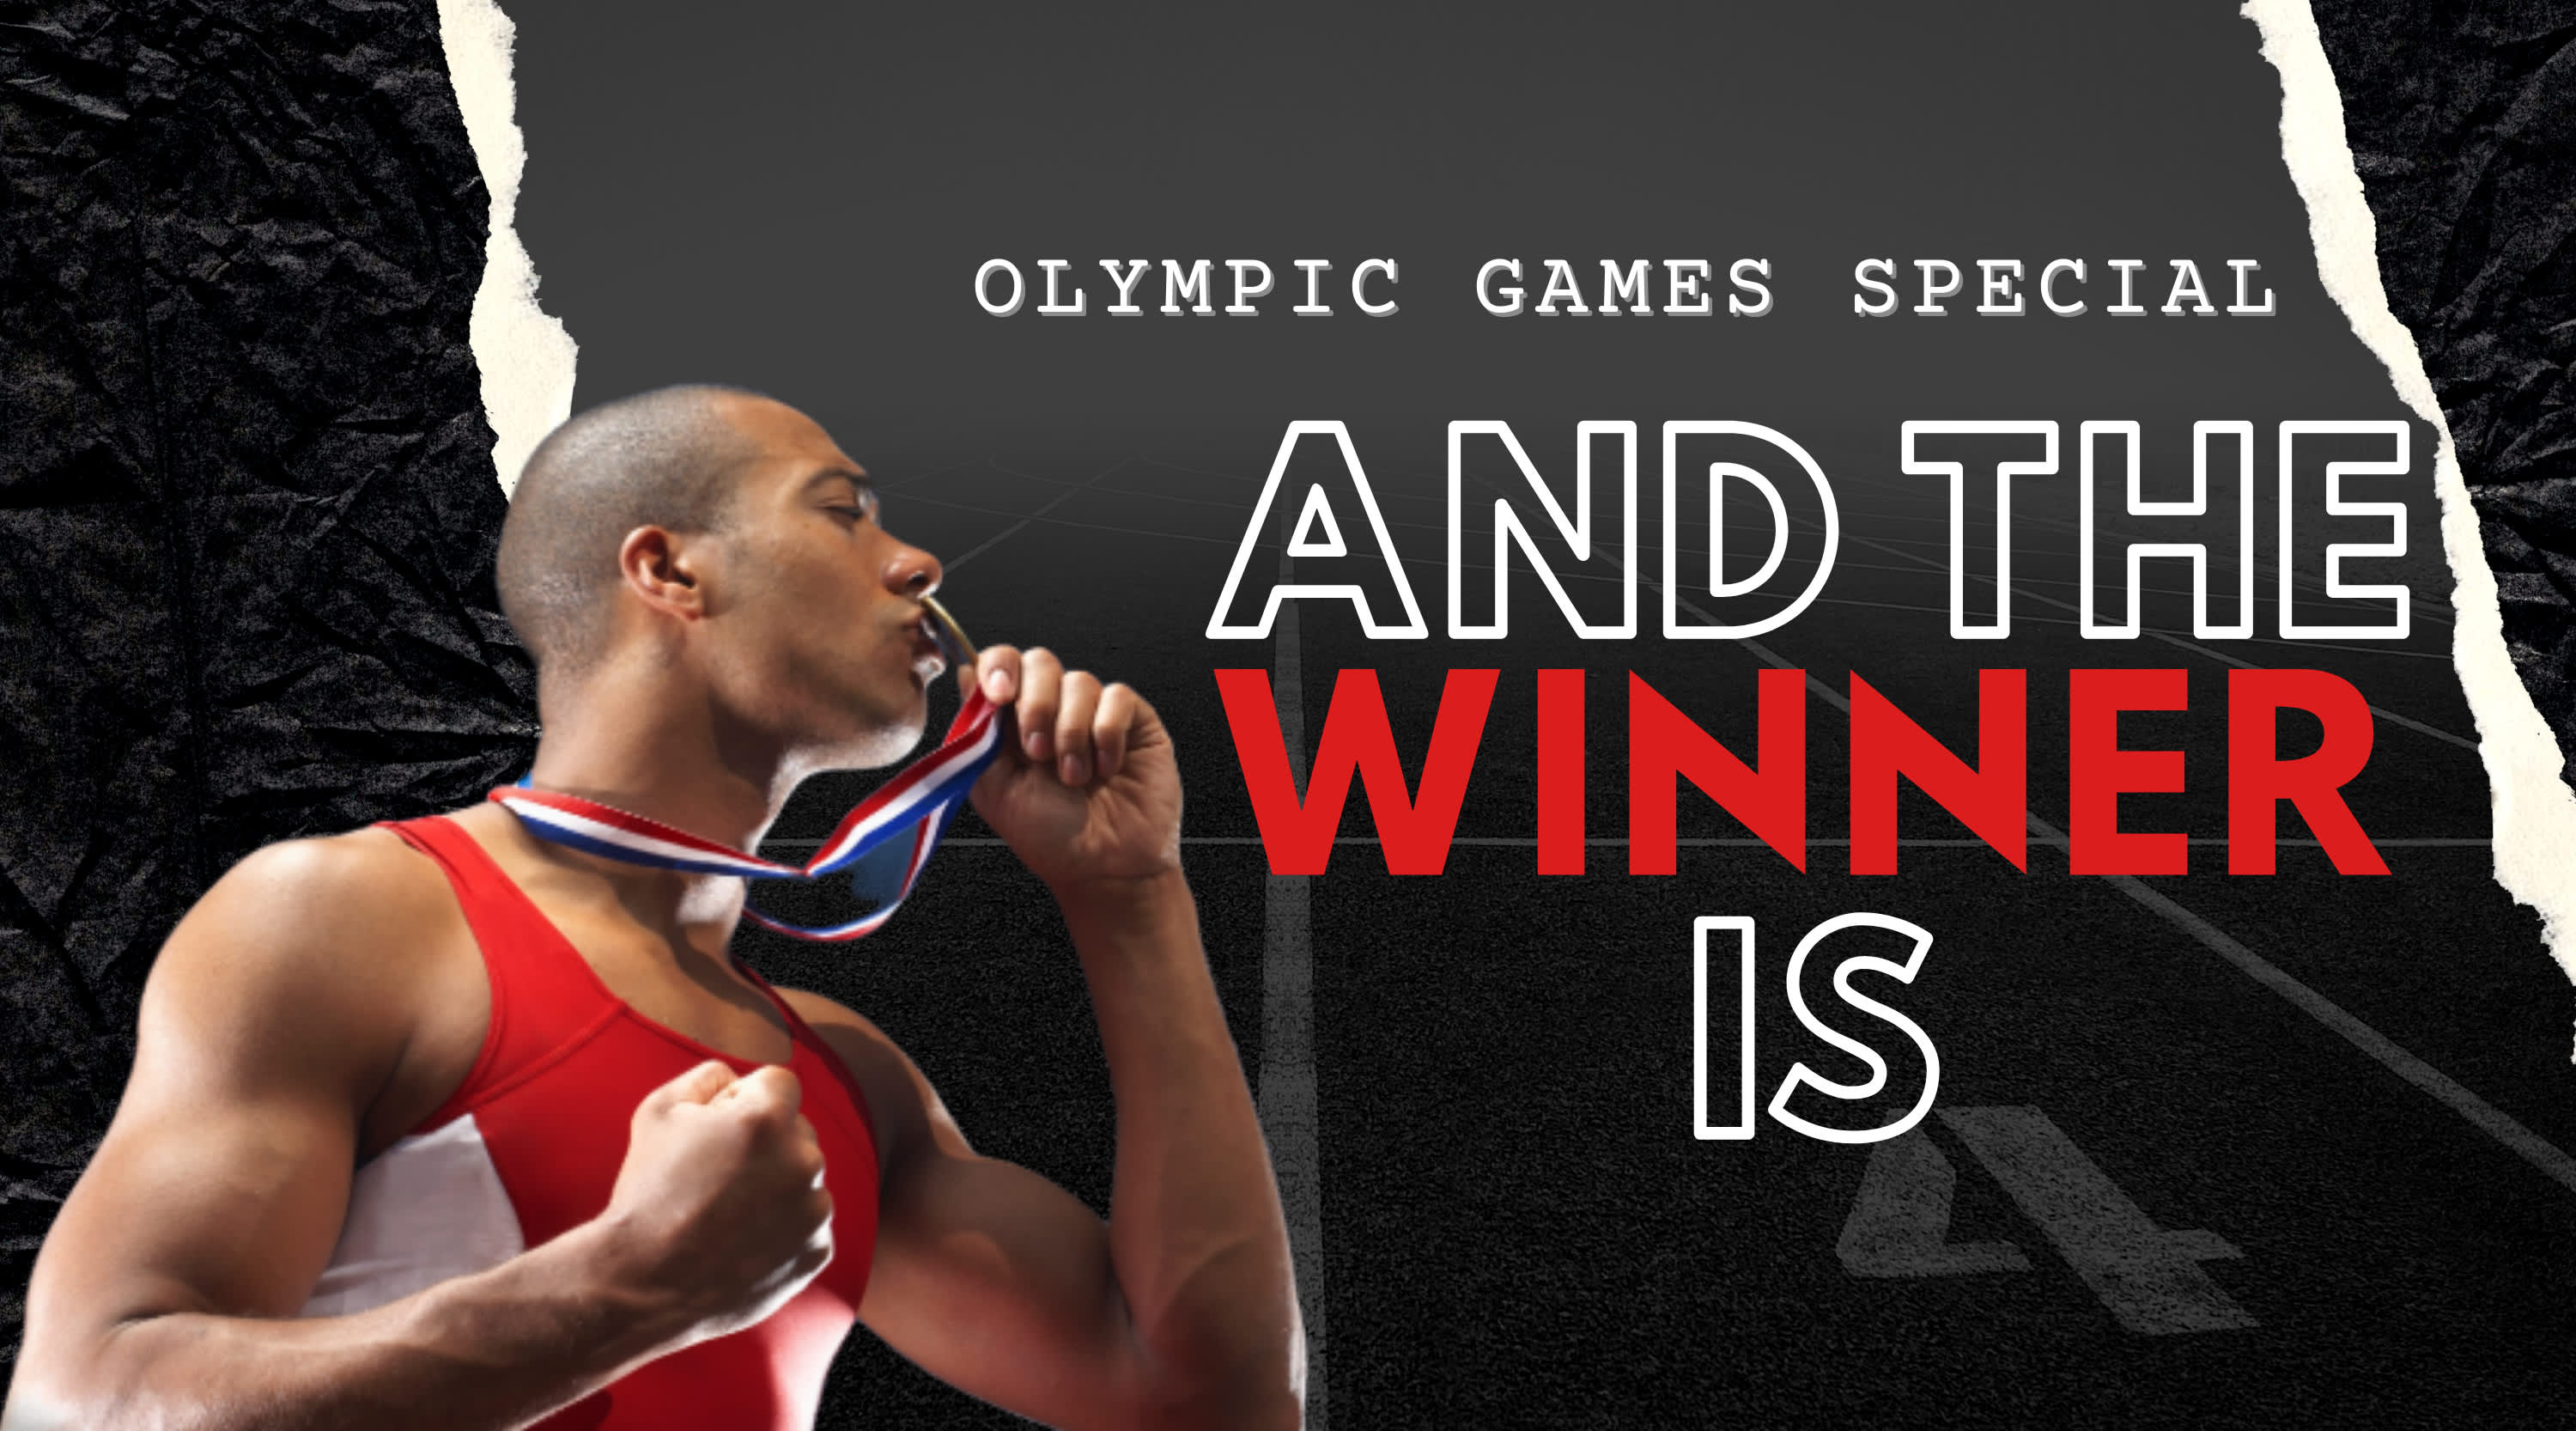 Olympic Games Special: And The Winner Is...